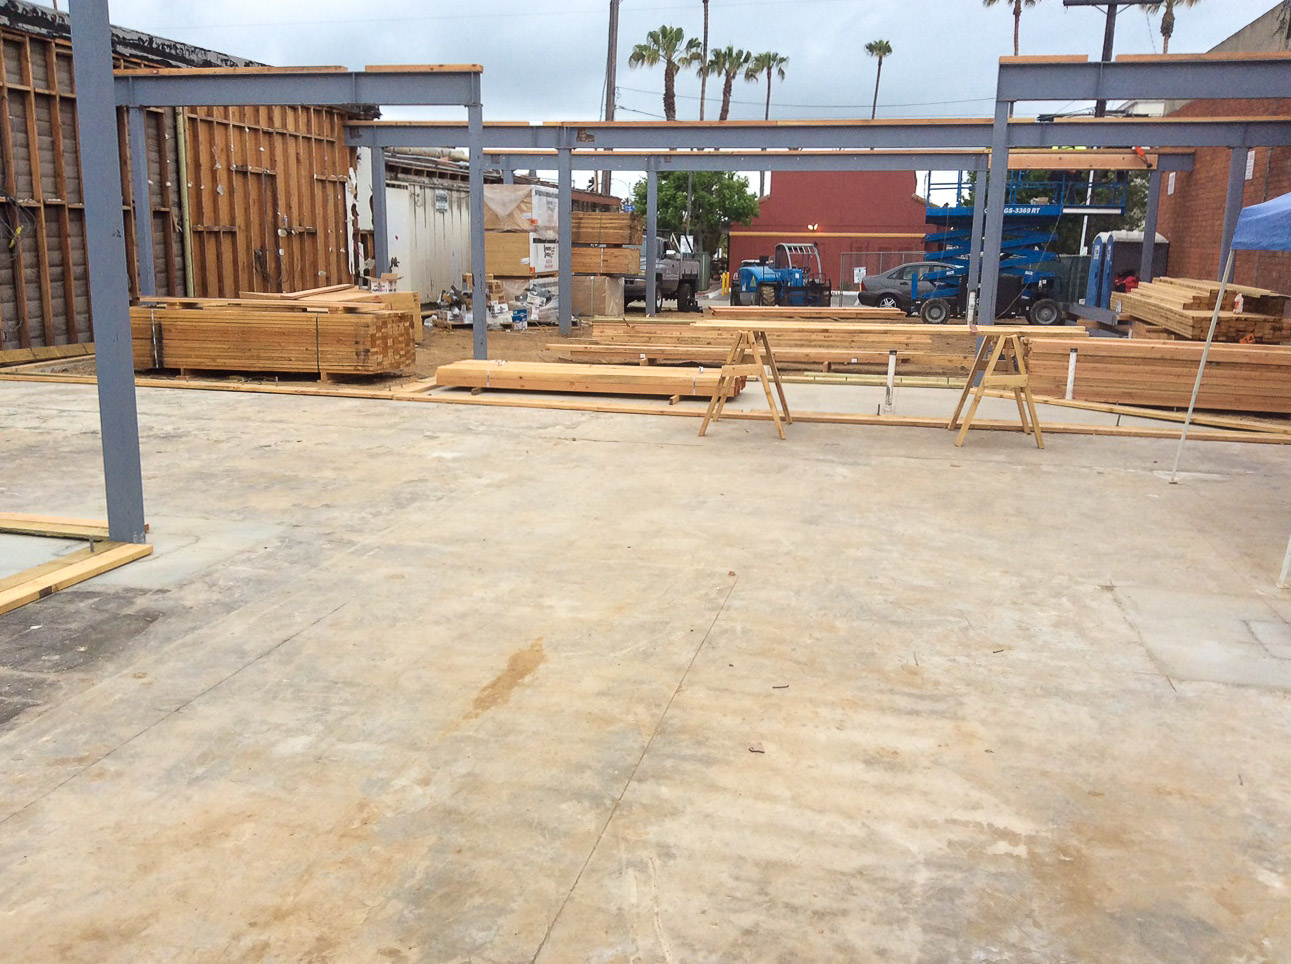 As H&R Steel finishes setting their first floor structural steel, the lumber is offloaded and D.A. Whitacre, a long time leader in San Diego carpentry,has stepped on site. Their framing is now underway at Hornblend Offices in Pacific Beach, Ca.